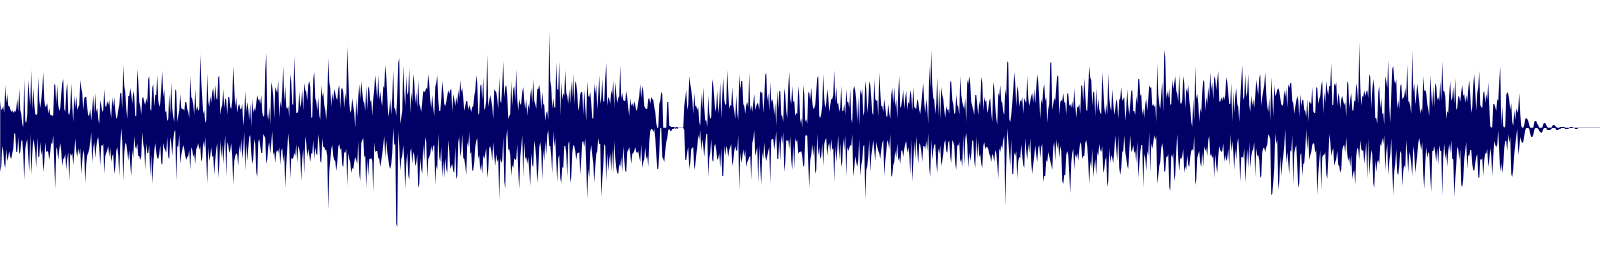 waveform of track #119034